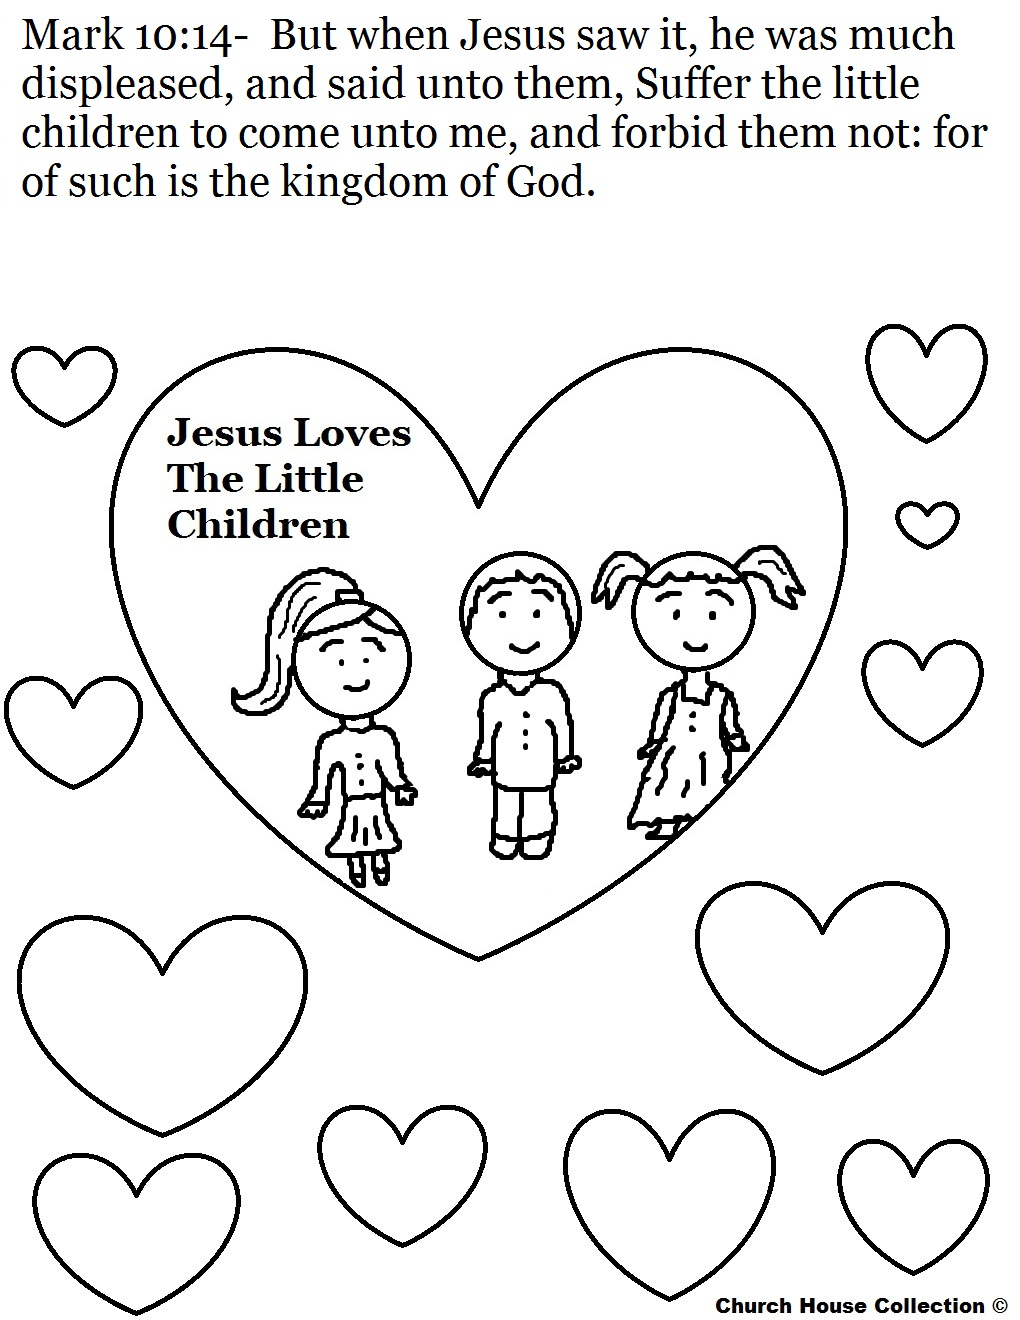 28 Sunday School Coloring Pages for Preschoolers Jesus Loves Gallery Of Prayer Trust In the Lord Collection